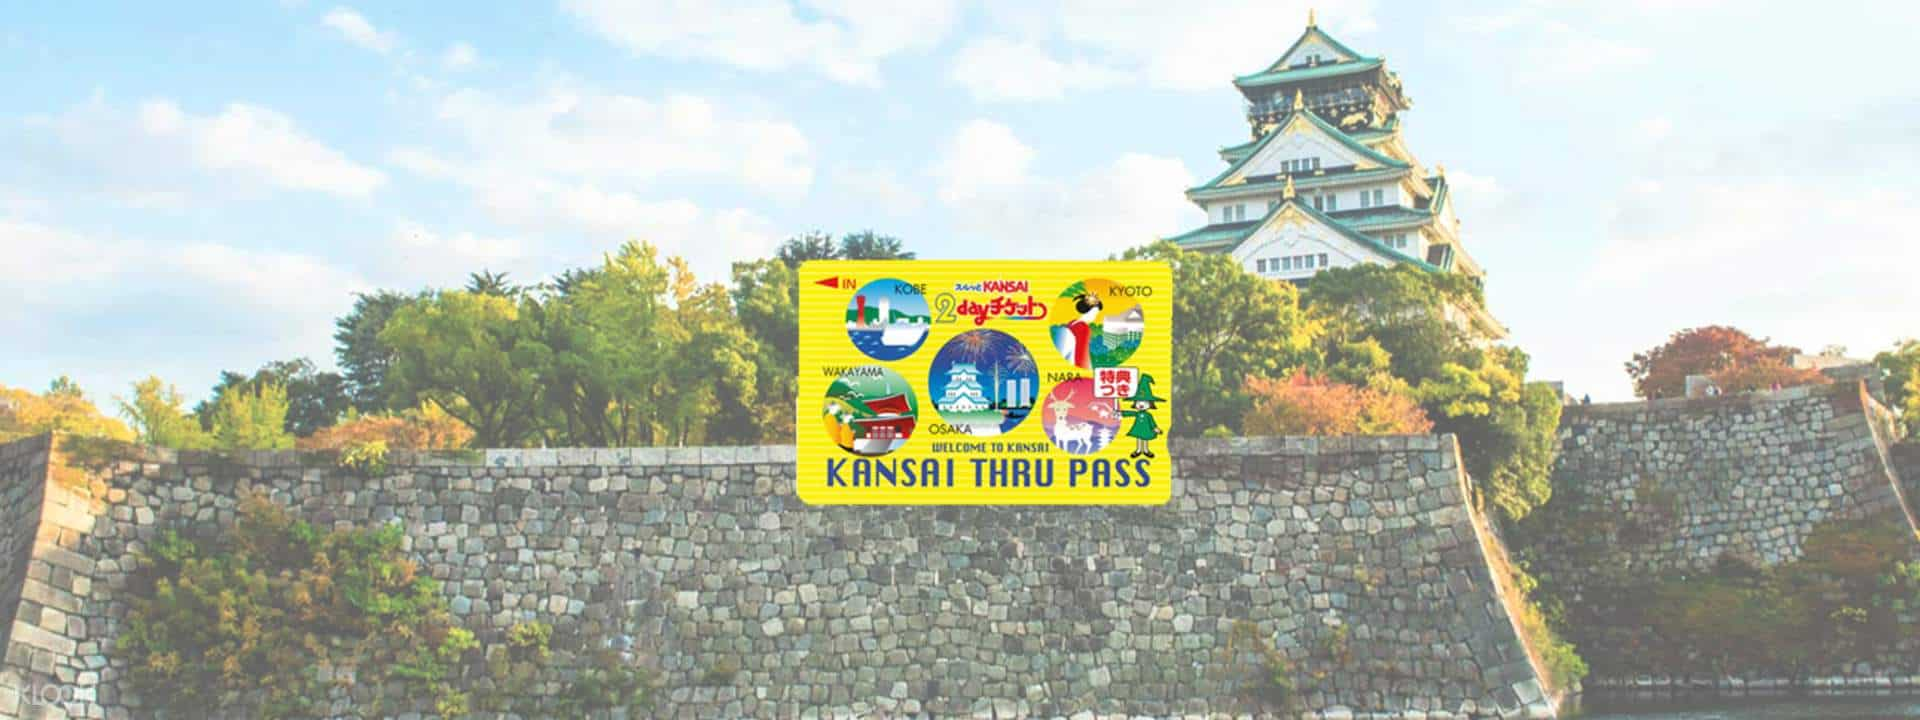 WHICH IS THE BEST? Kansai Thru Pass, JR Pass, Osaka Amazing Pass